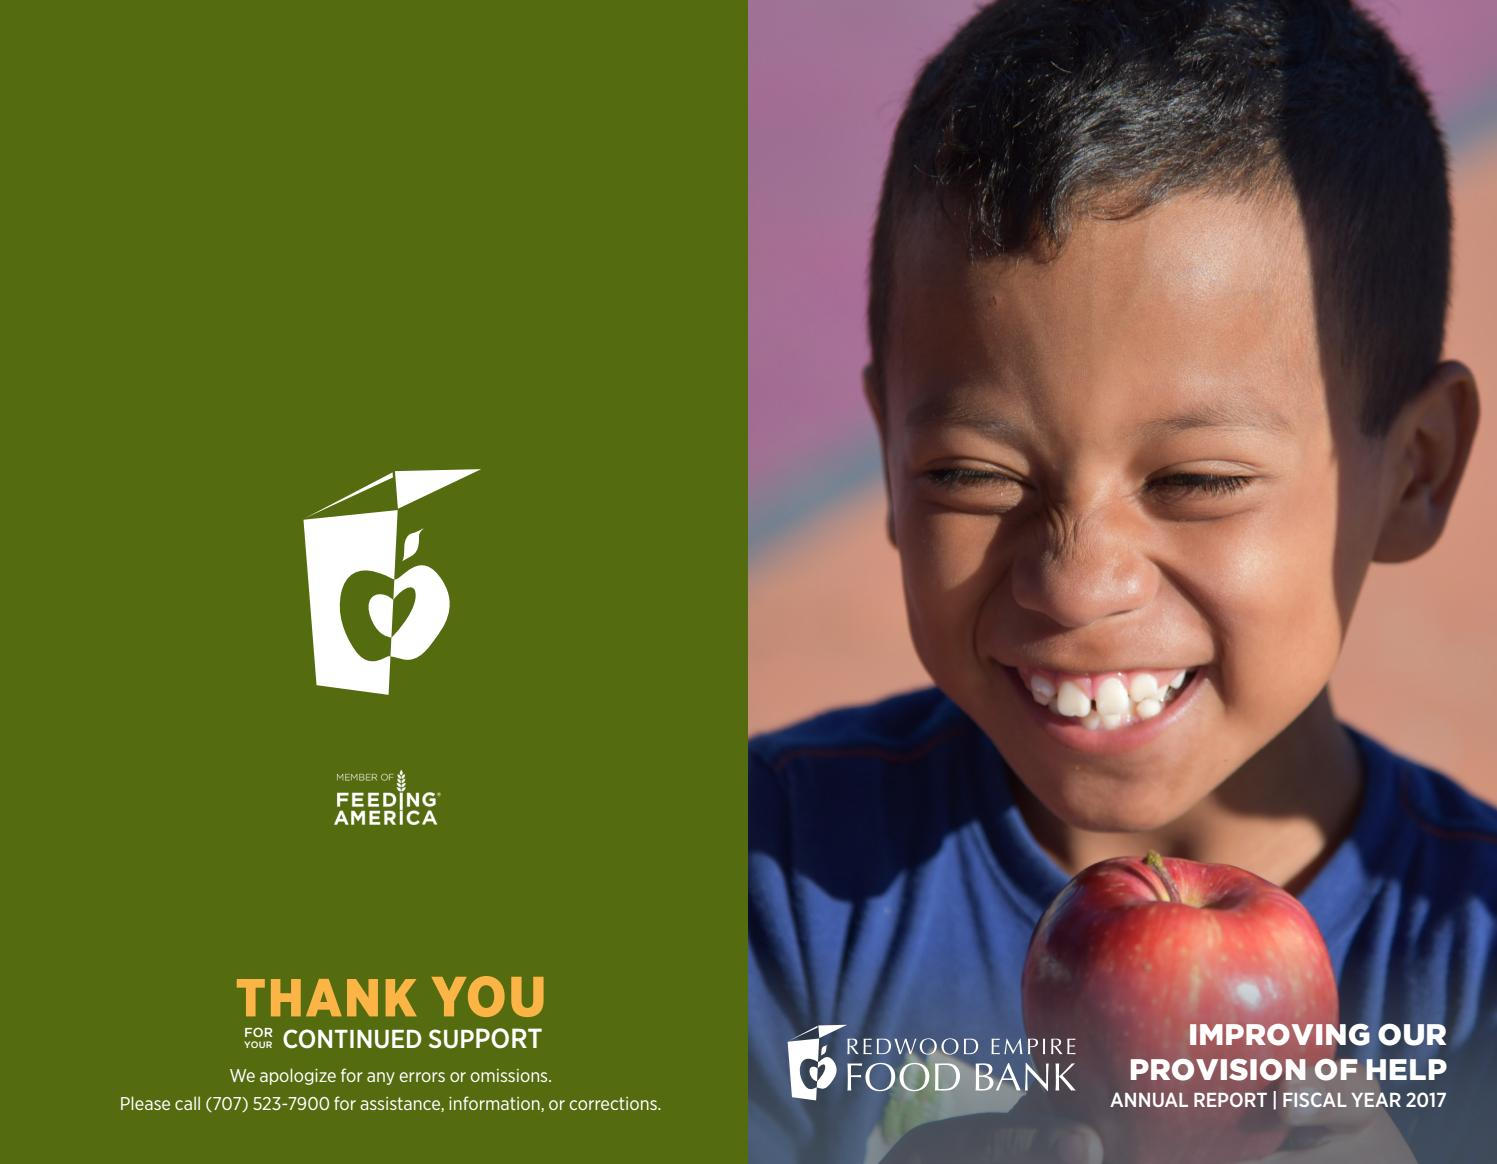 The Redwood Empire Food Banks Annual Report